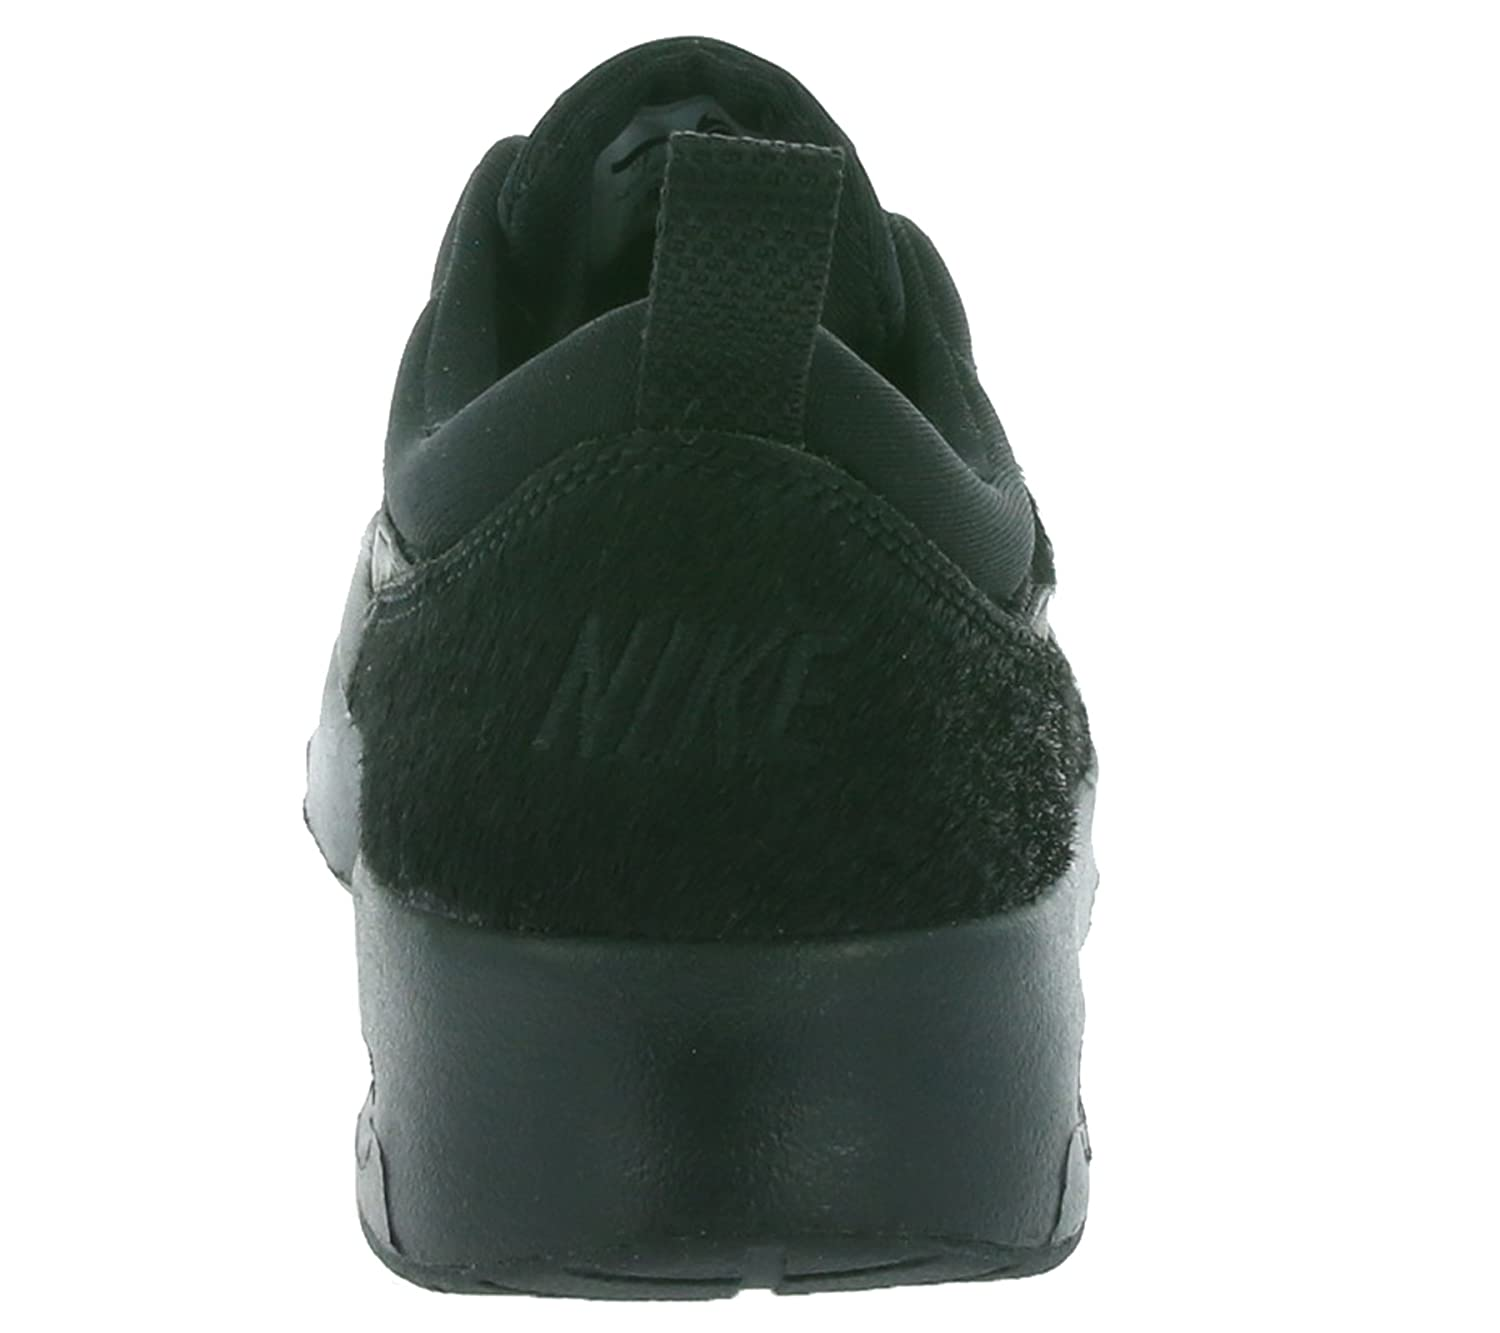 info for 1c819 28001 Nike Women s s 616723-011 Fitness Shoes  Amazon.co.uk  Shoes   Bags